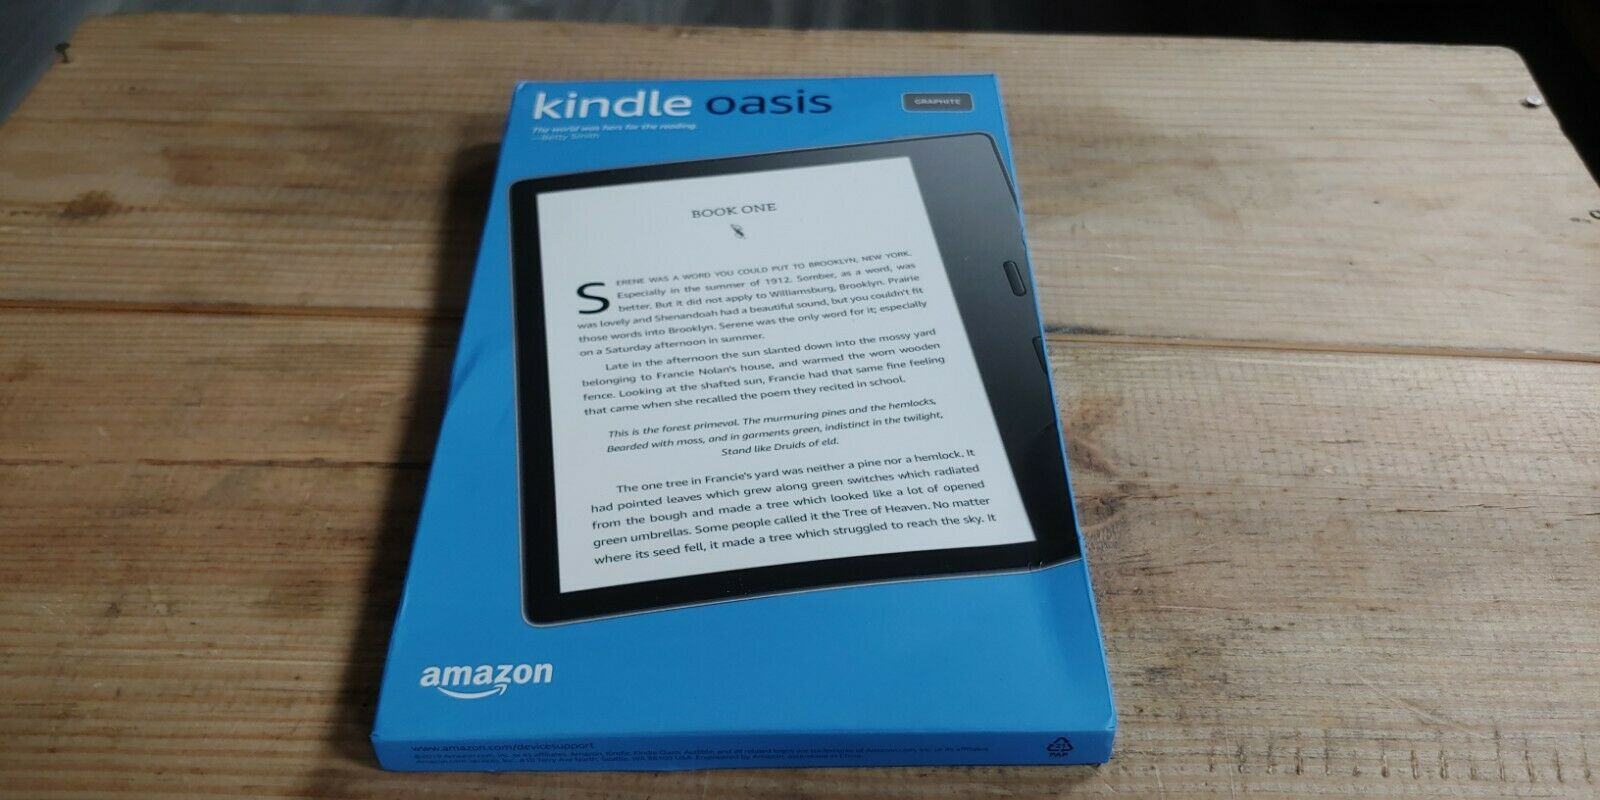 2019 10th Gen Amazon Kindle Oasis Waterproof + Adjustable Warmth 32GB Graphite. Buy it now for 249.99